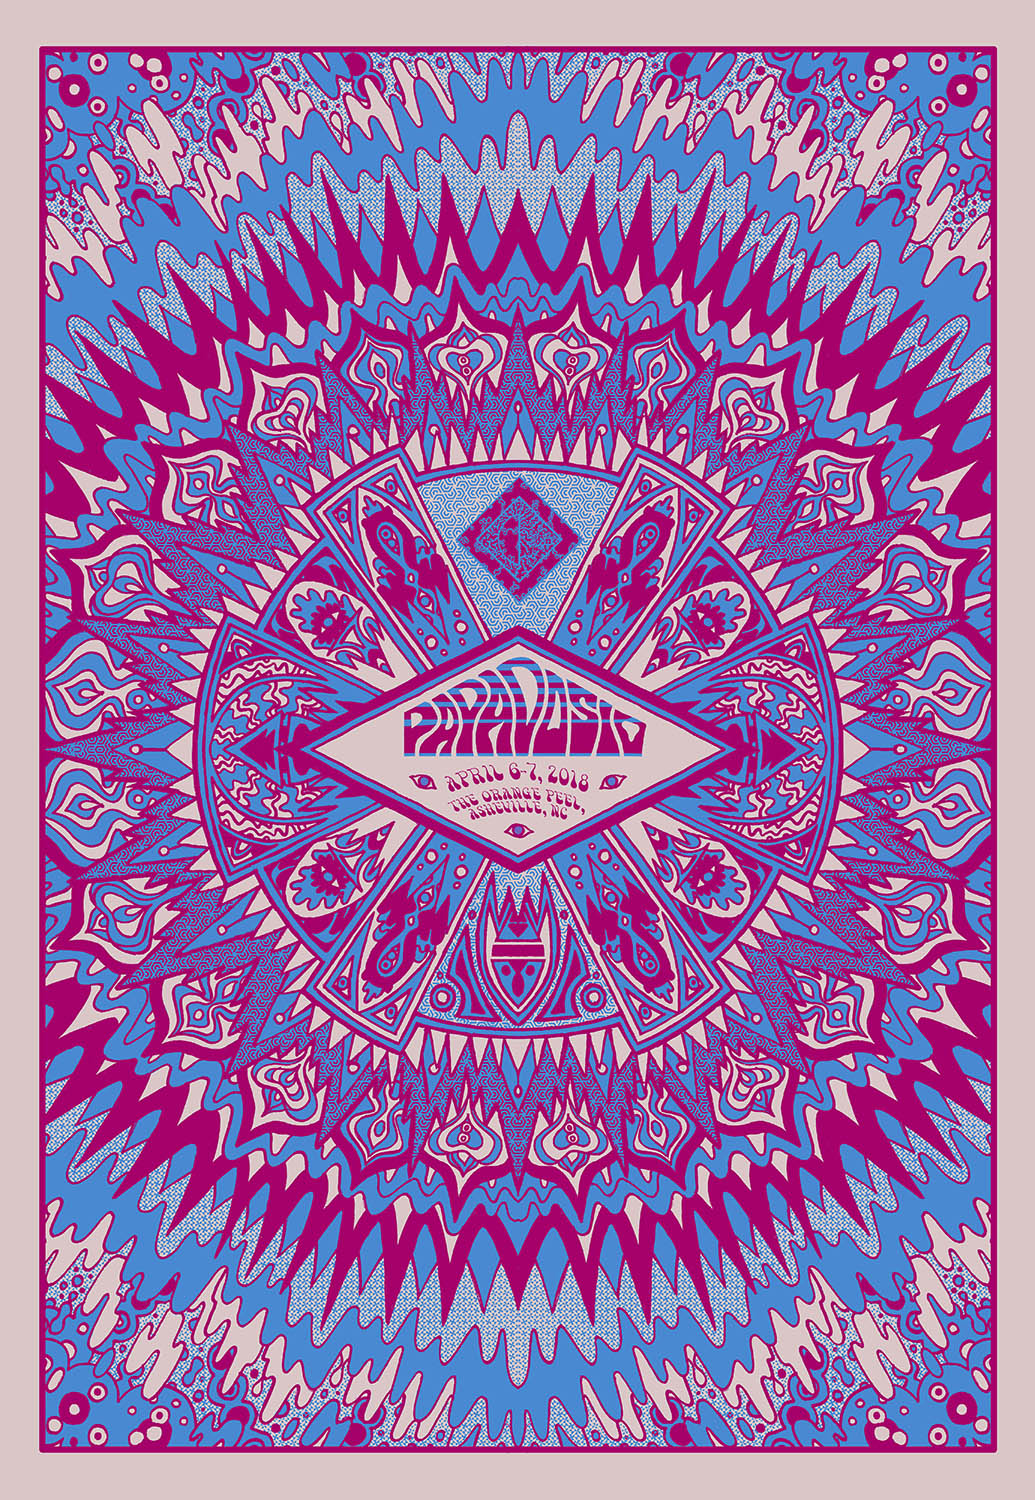 Official Papadosio Poster